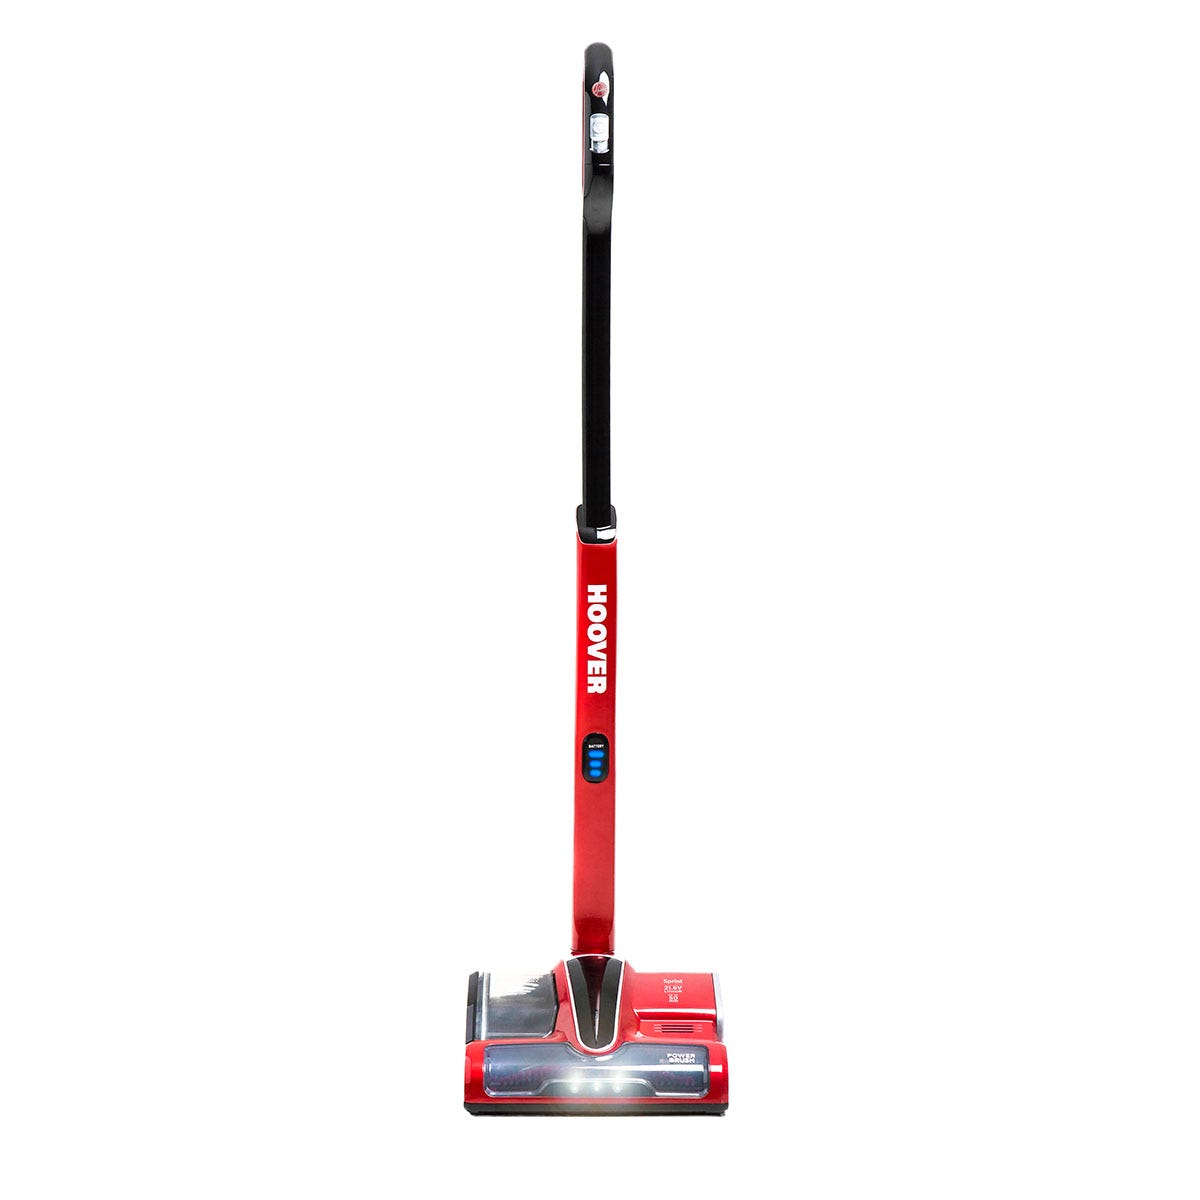 Hoover Sprint Cordless Vacuum Cleaner - Red